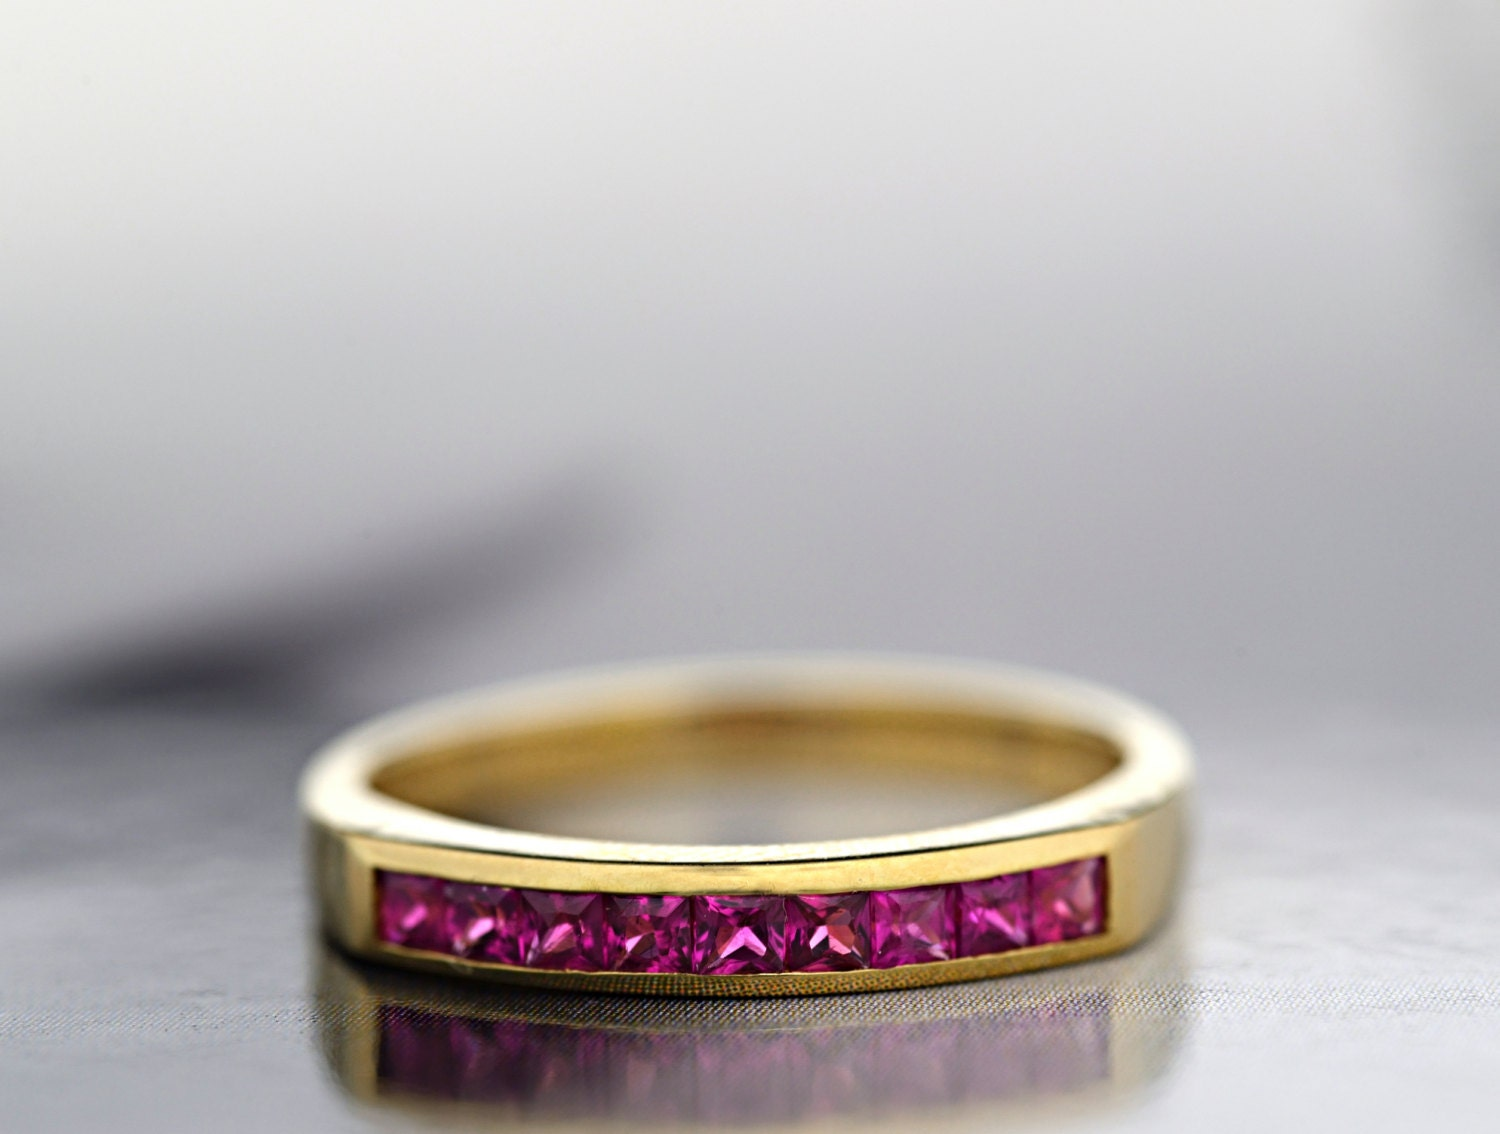 18ct Yellow Gold Ruby Half Eternity Ring  Eternity Wedding Ring  Anniversary Ring  Ready to Ship  FREE SHIPPING